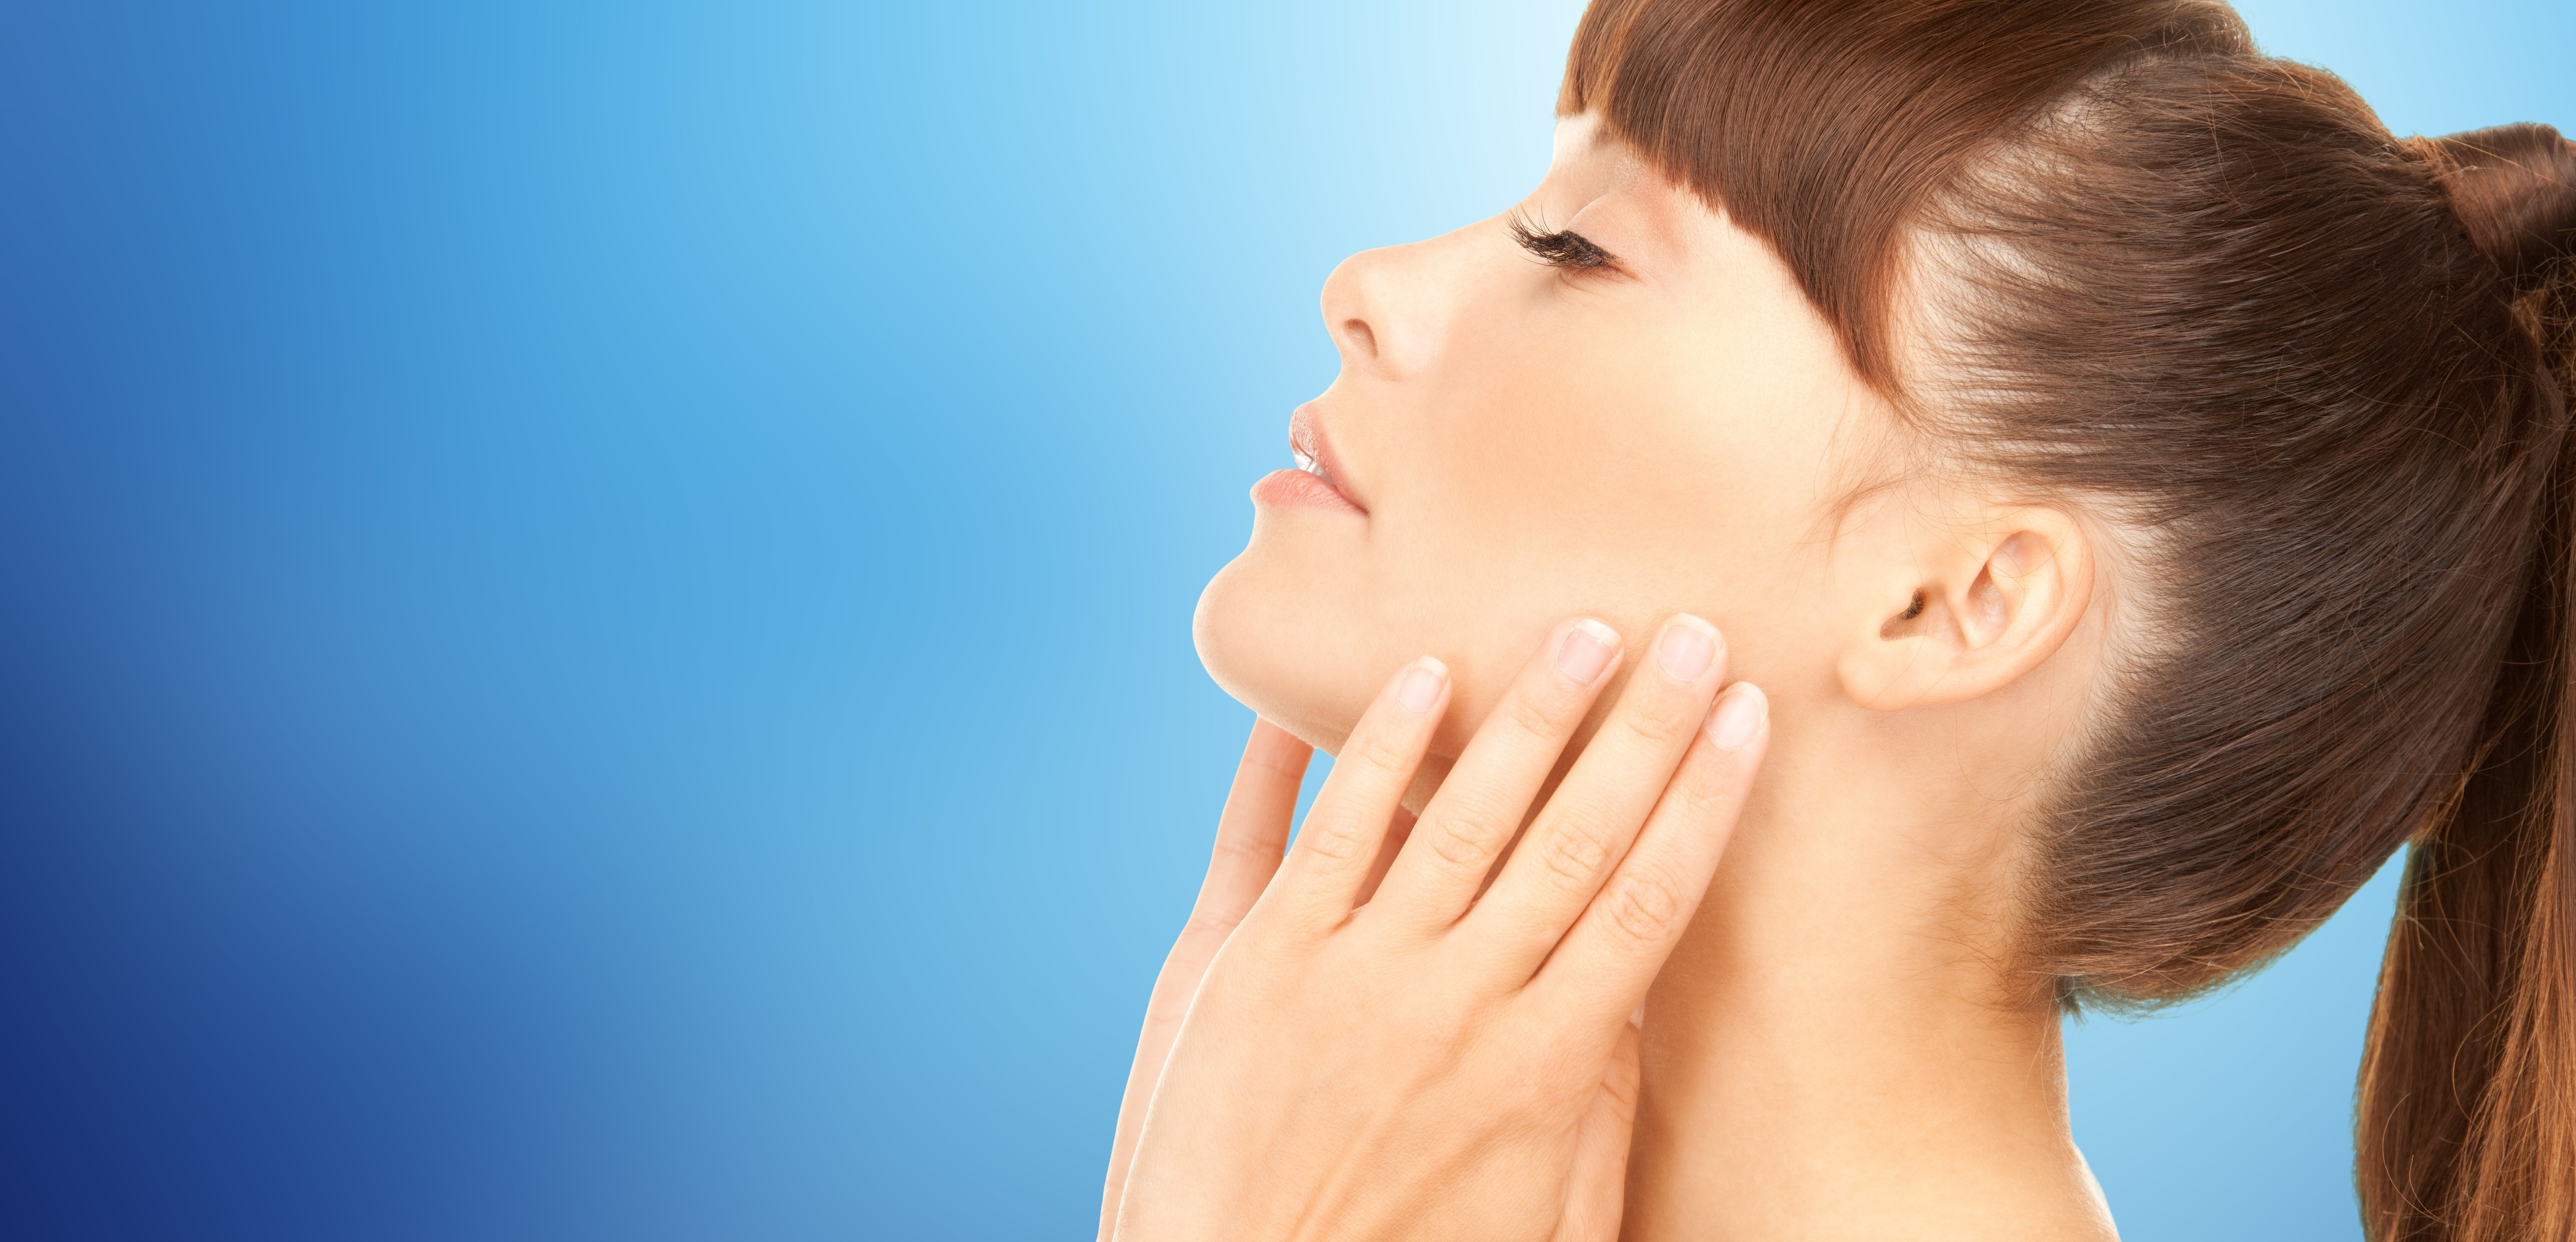 Non-surgical rhinoplasty is also known as a Liquid nose job